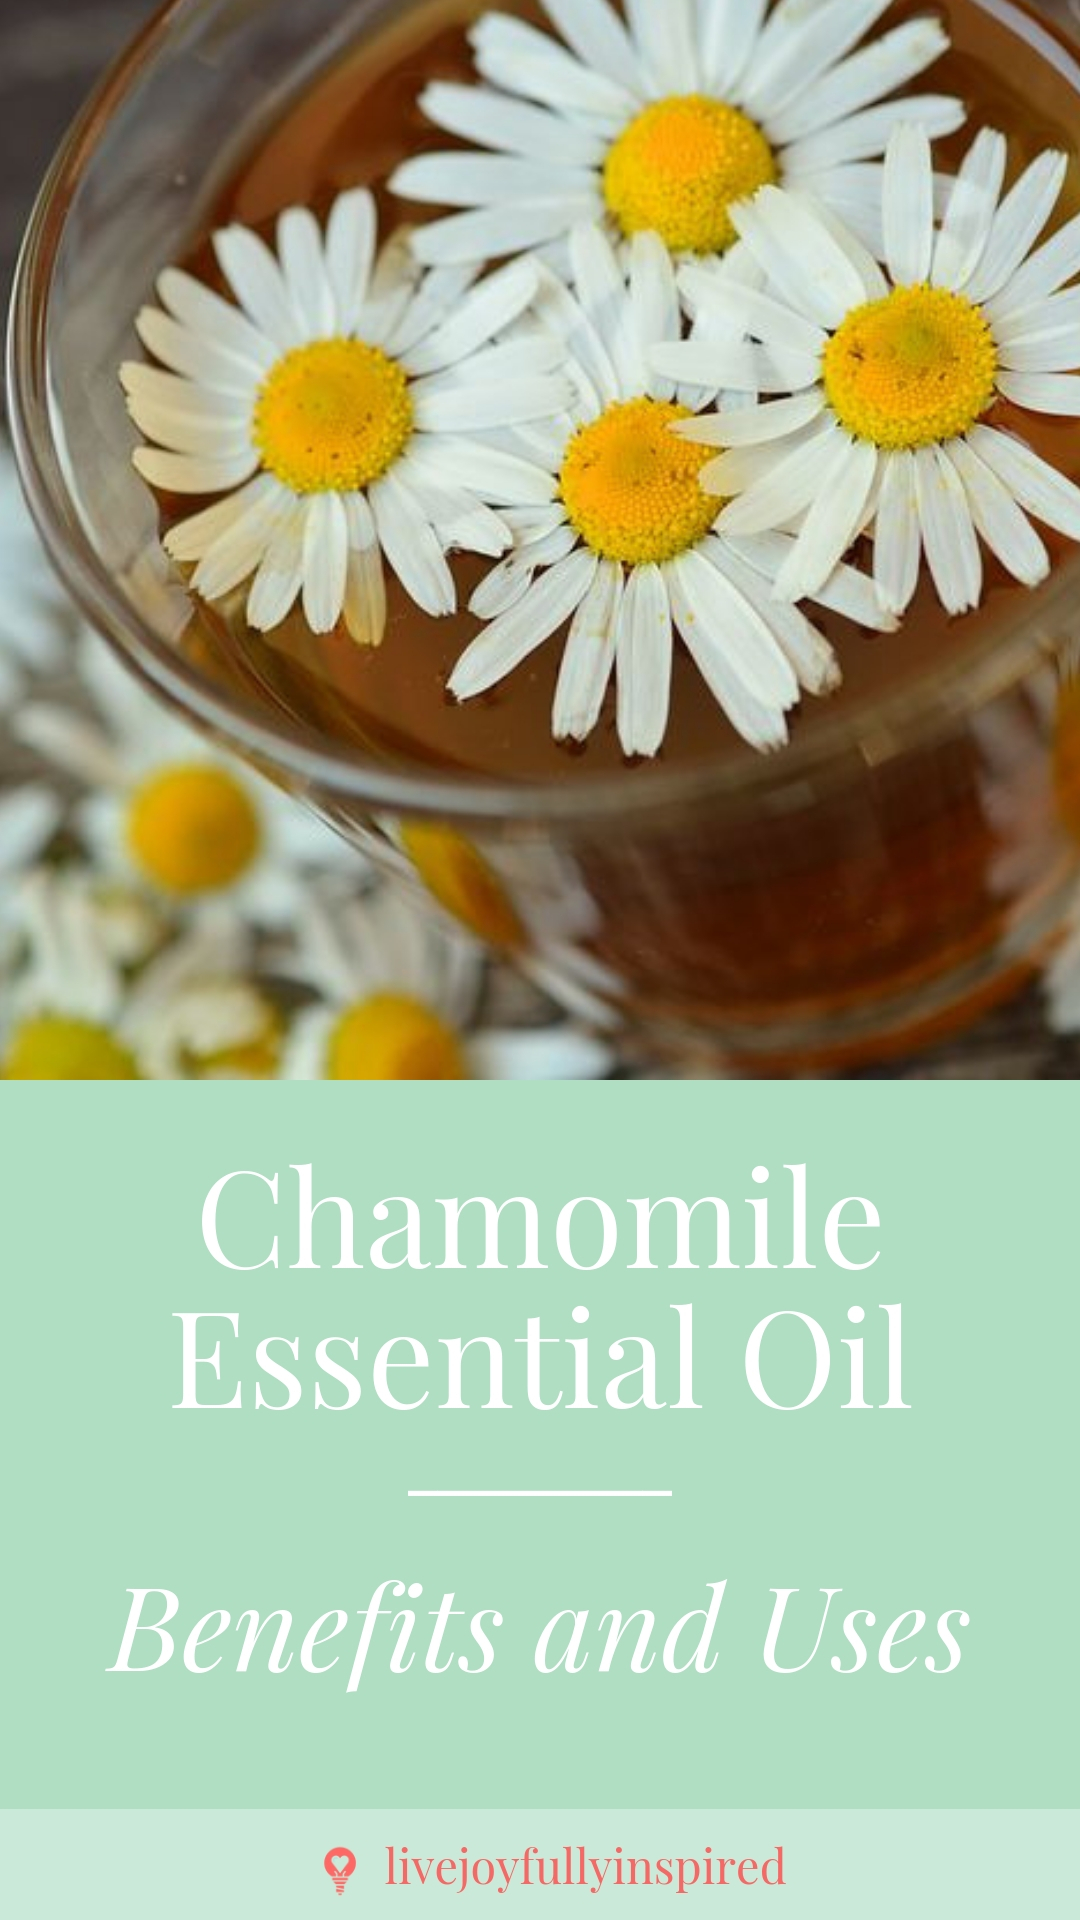 Chamomile Essential Oil. Known all over the world as a relaxing tea, Chamomile has so much more to offer than just being a delicious herbal drink. It's great for headaches, backaches, and insect bites #chamomileessentialoil #headacherelief #insectrepellent